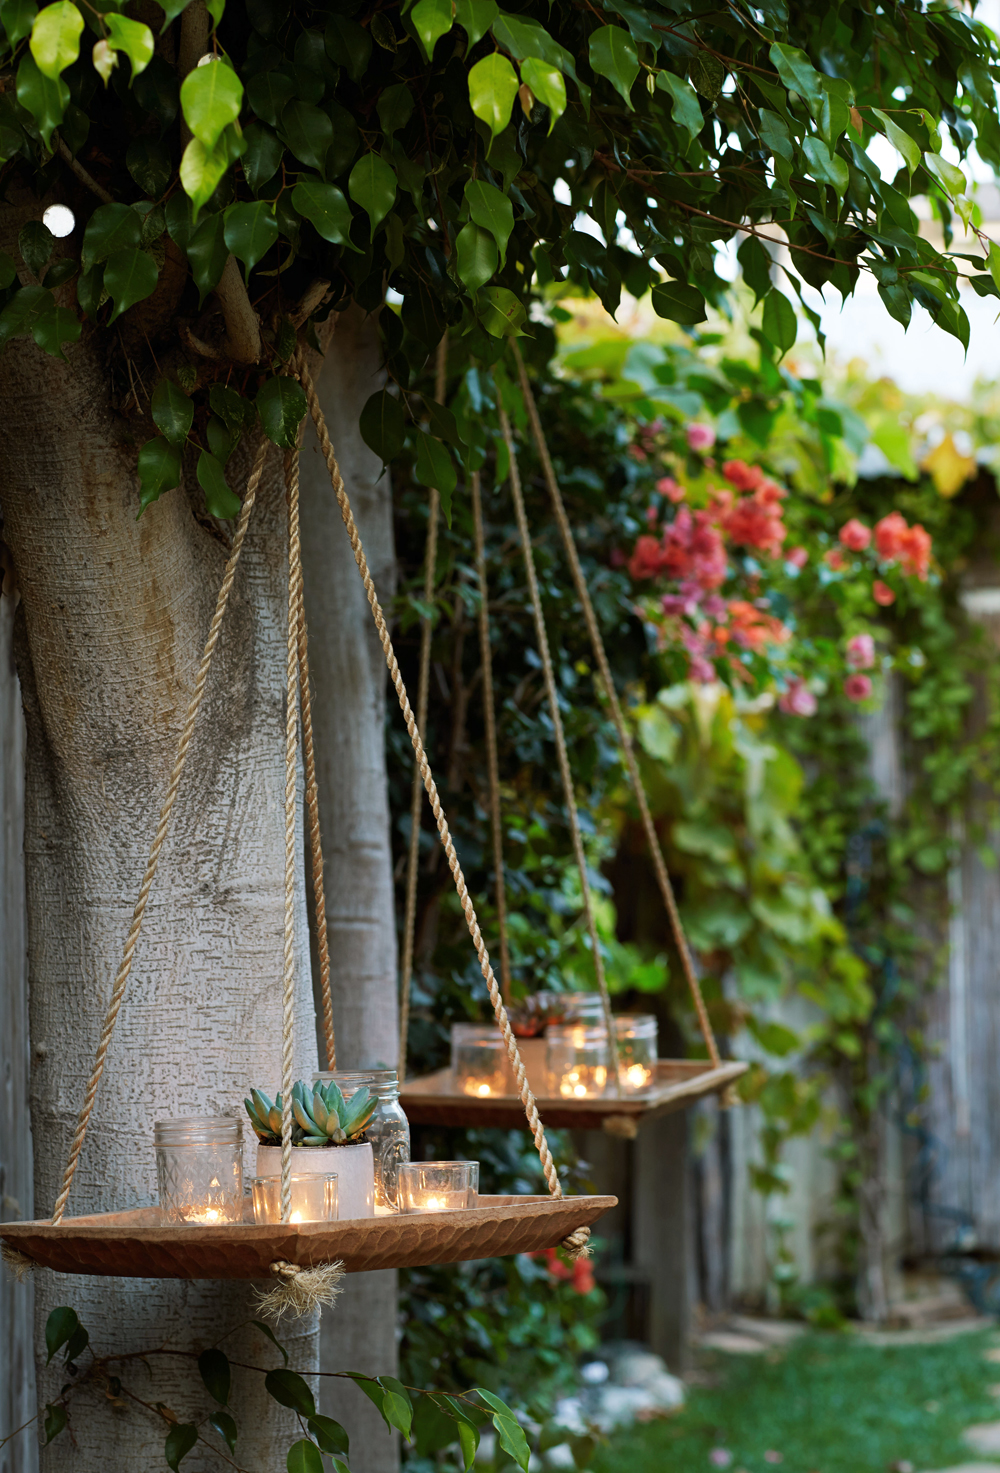 Photo of the Cottage garden by James Tse for THE NEST / THE KNOT Magazines.